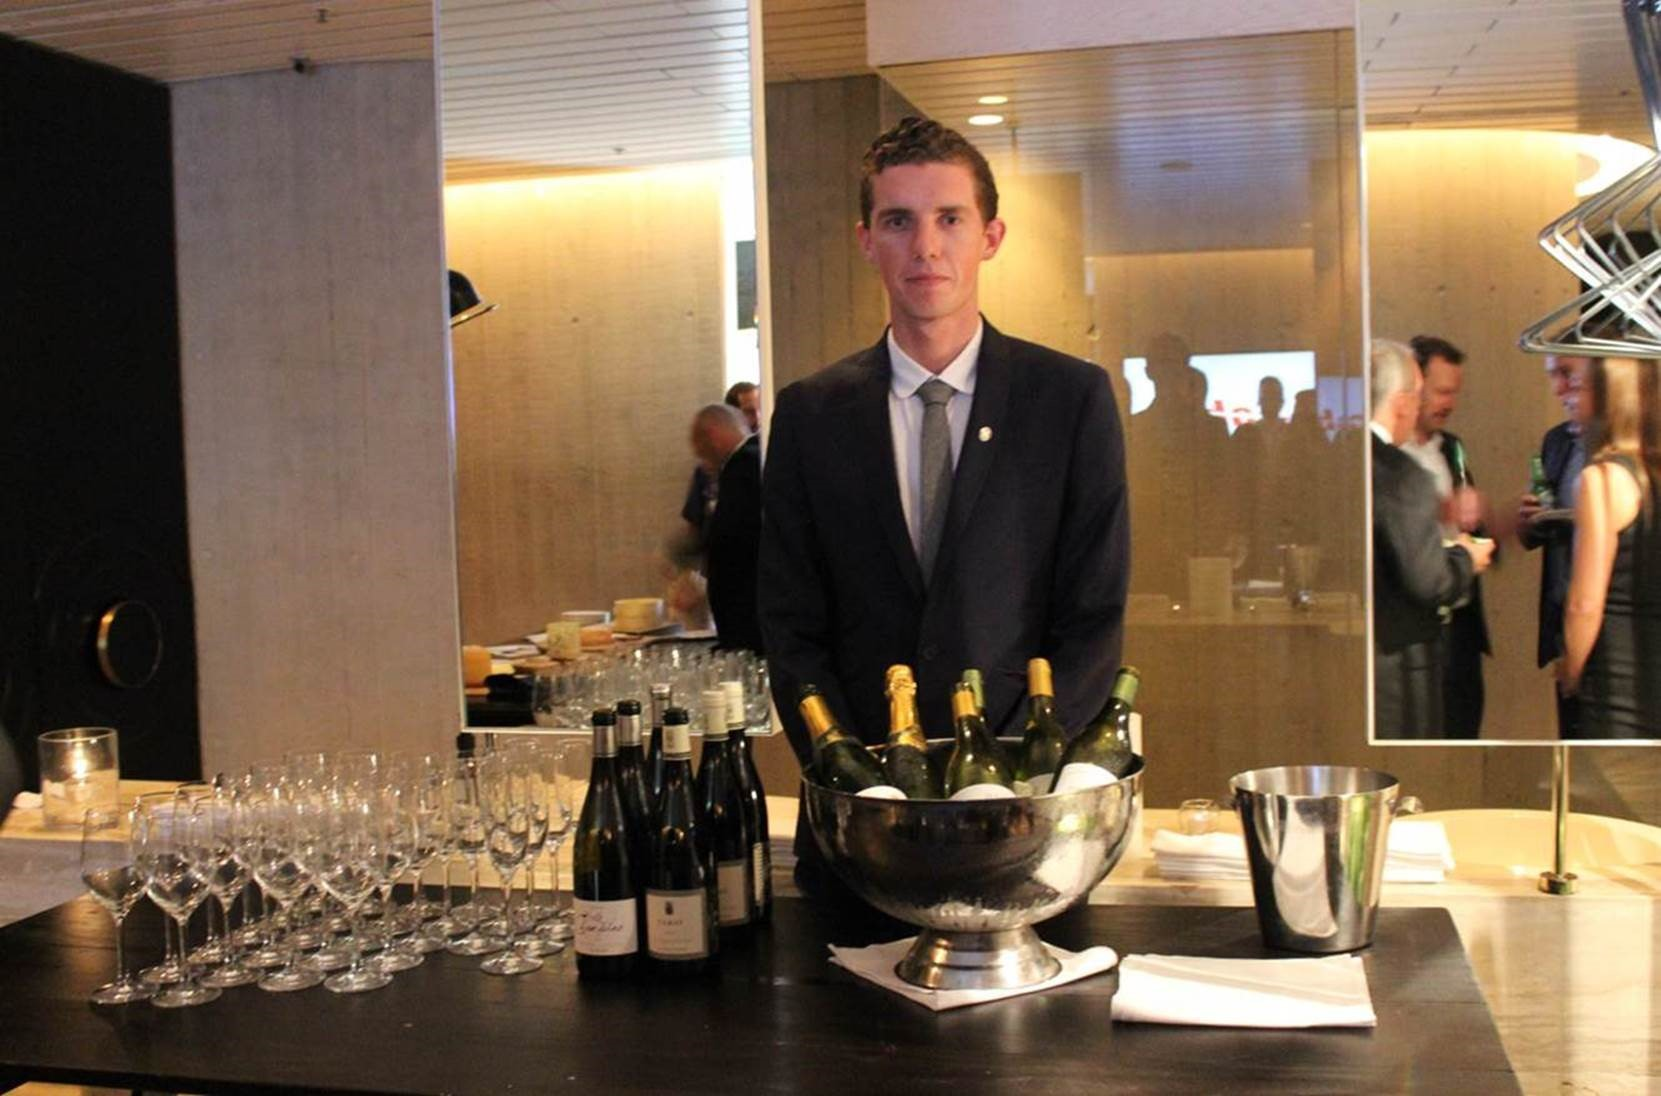 Sabre's guests took part in a wine and cheese tasting session hosted by Ivy.